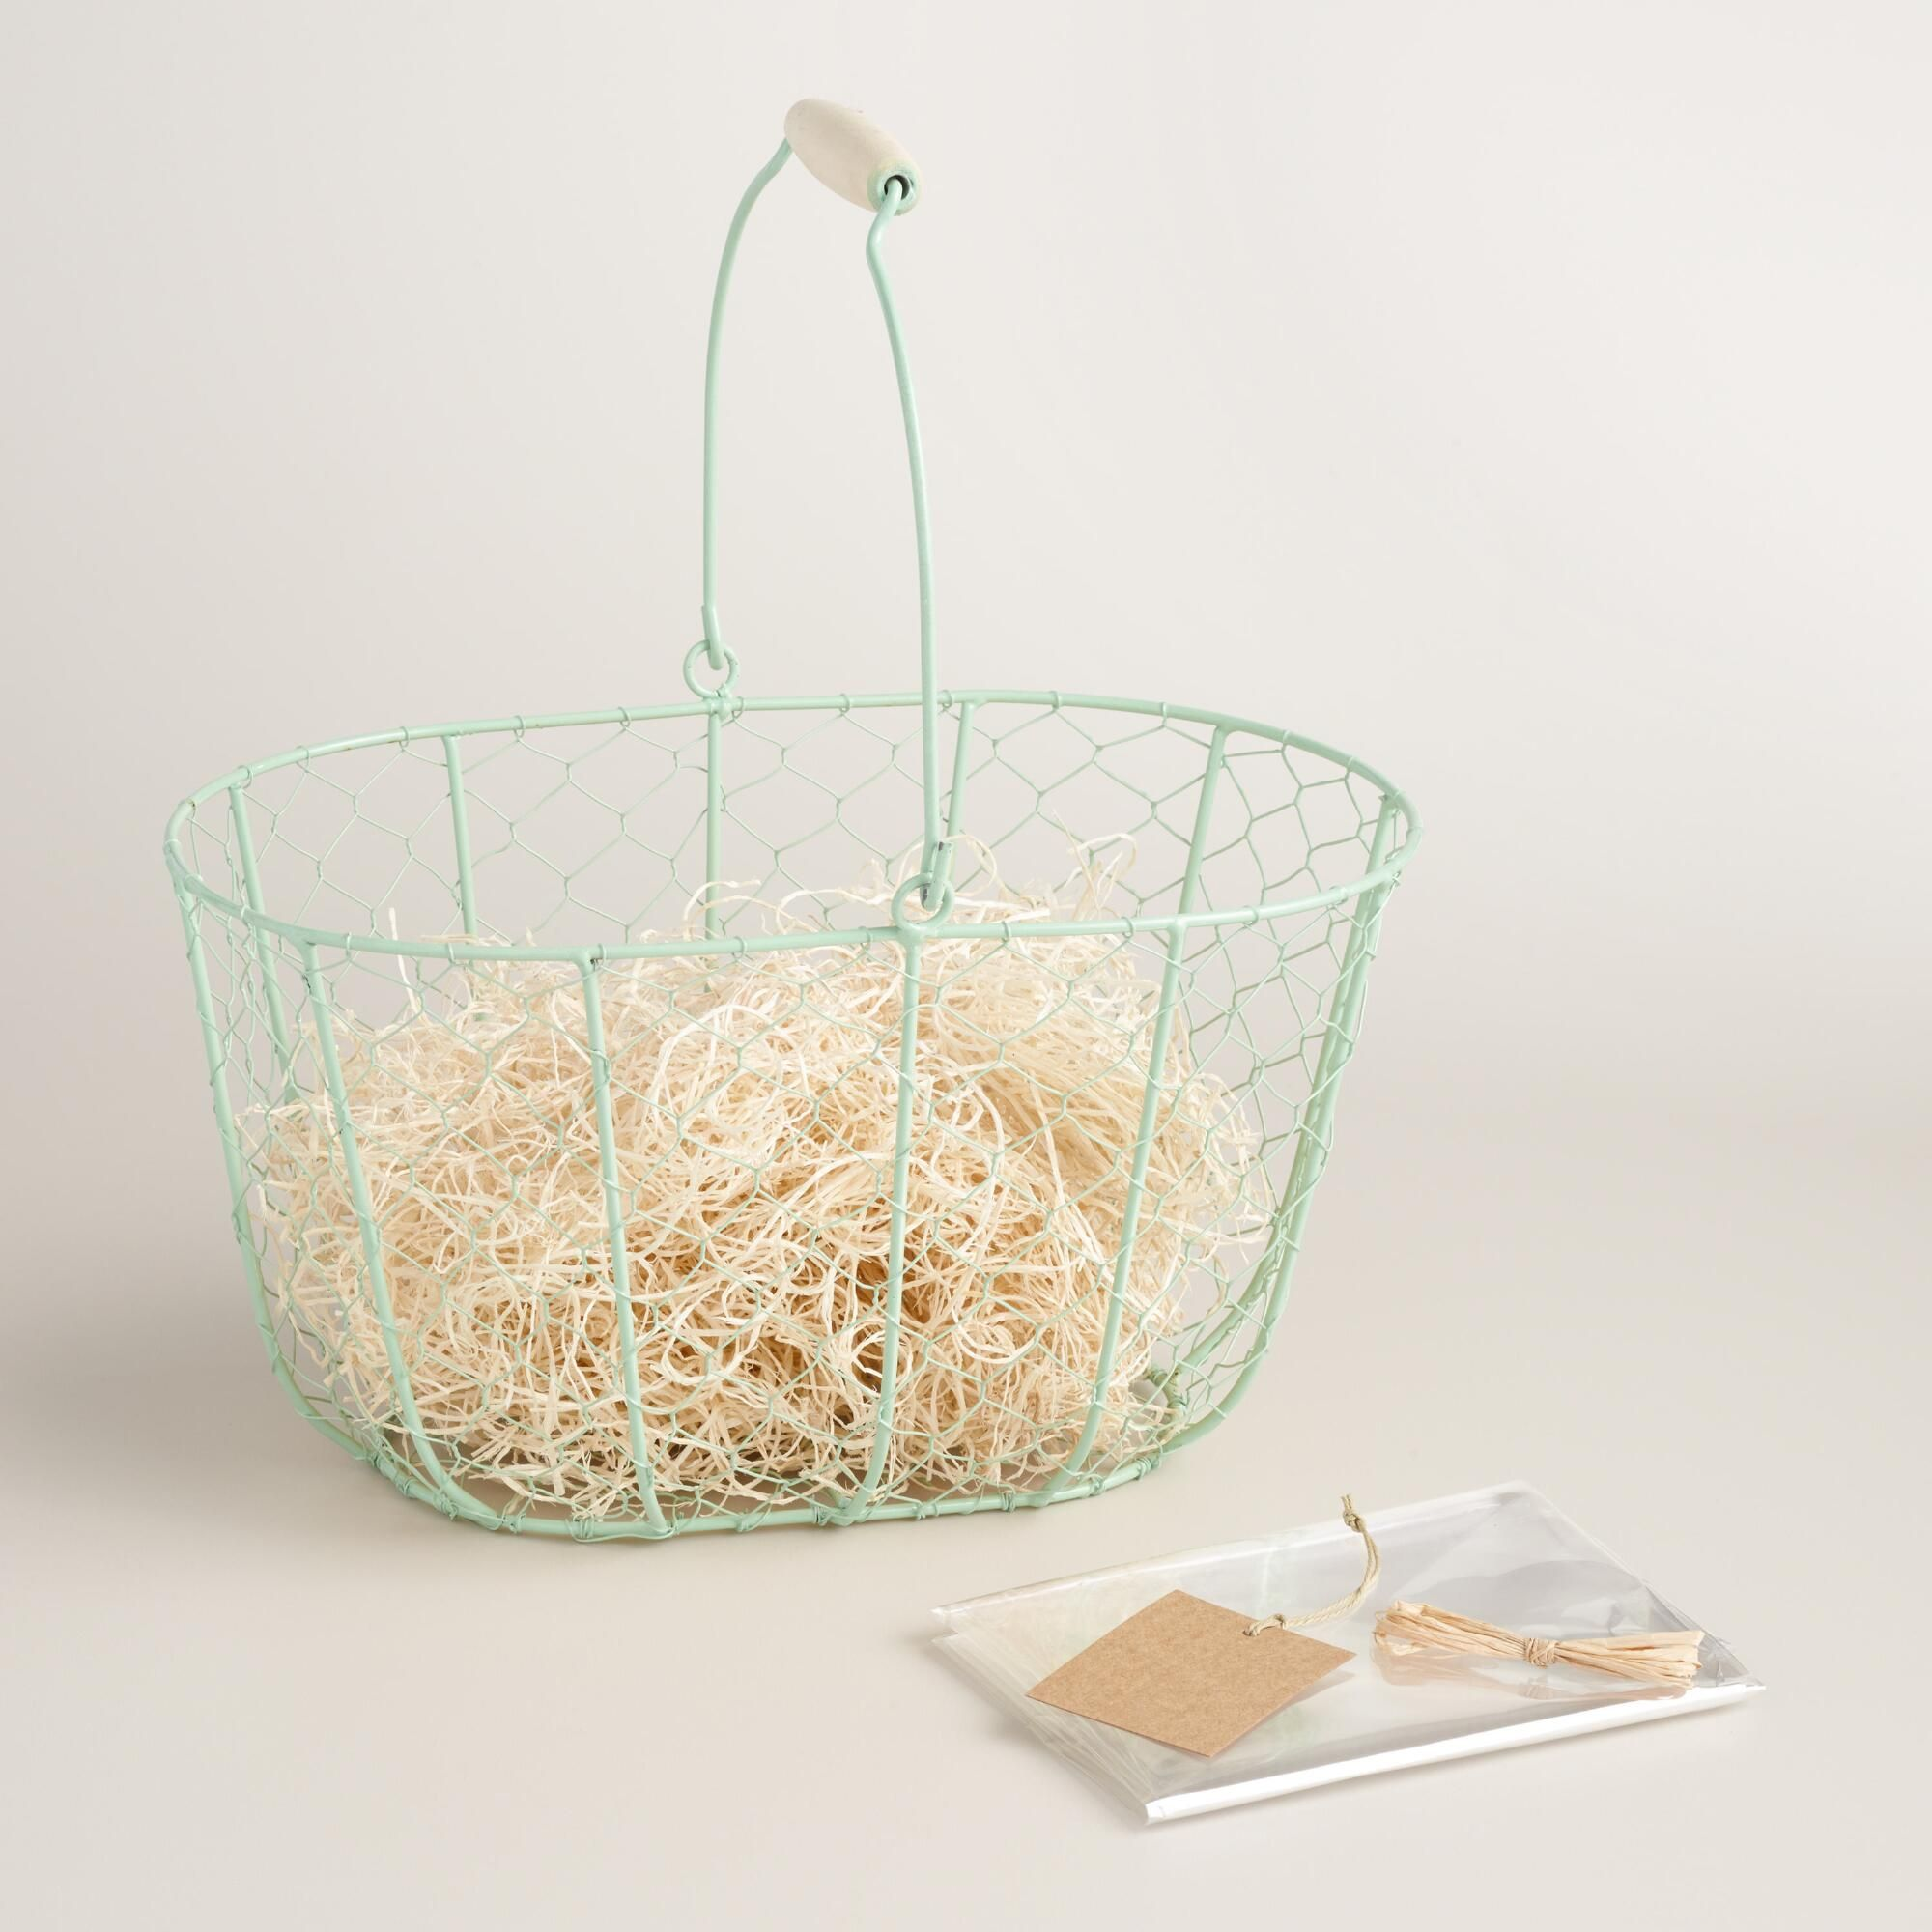 A fabulous way to gift for Easter and beyond, our basket kit ...